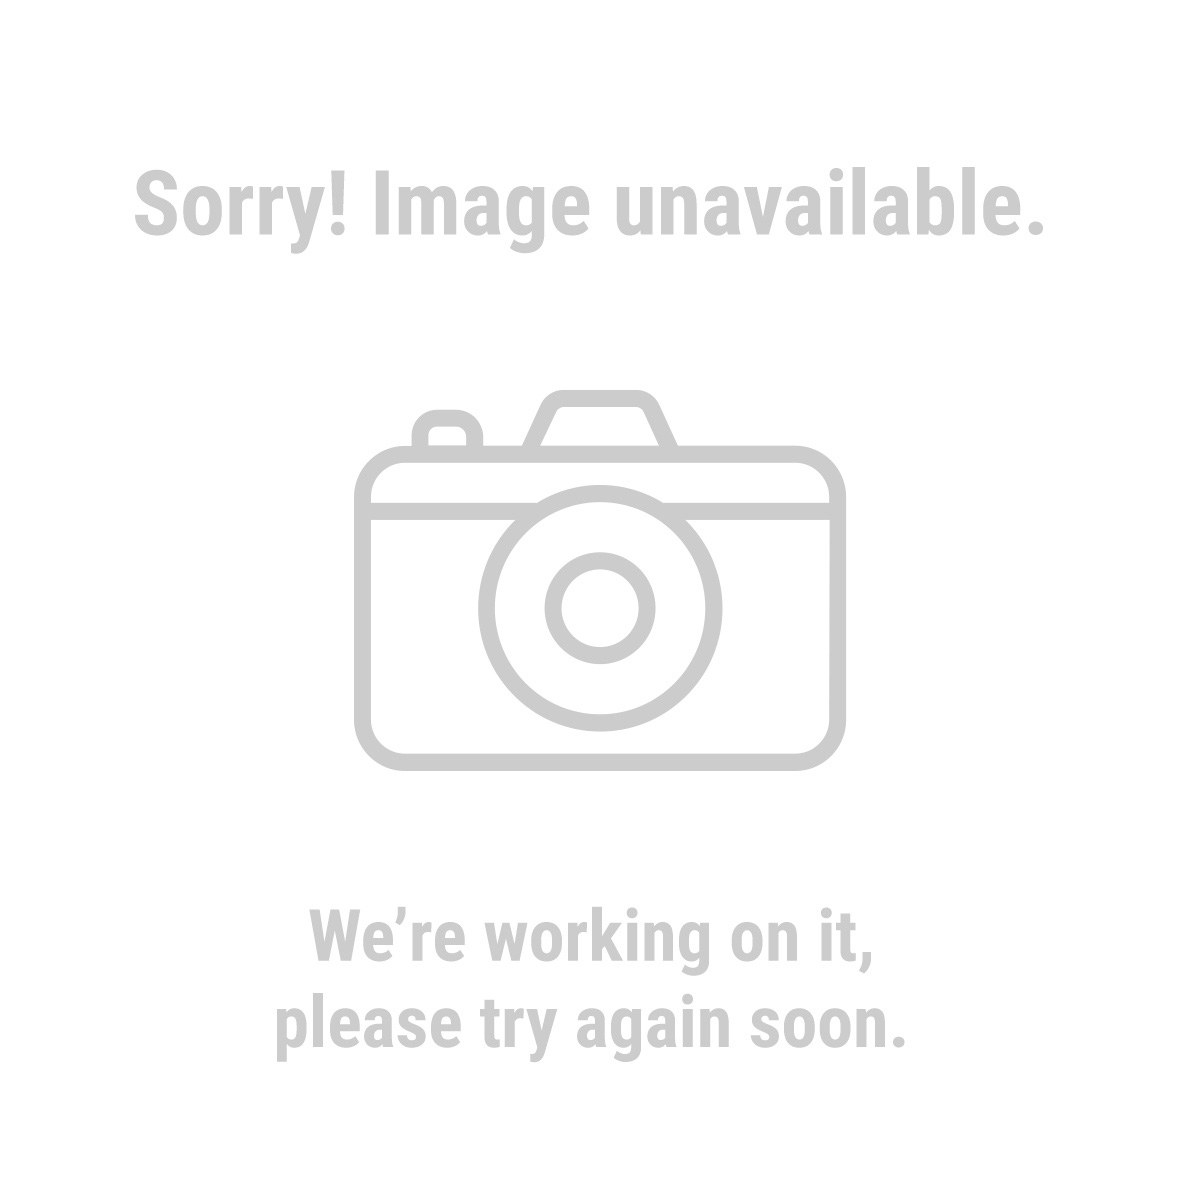 U.S. General 95181 Rechargeable 24 LED Work Light